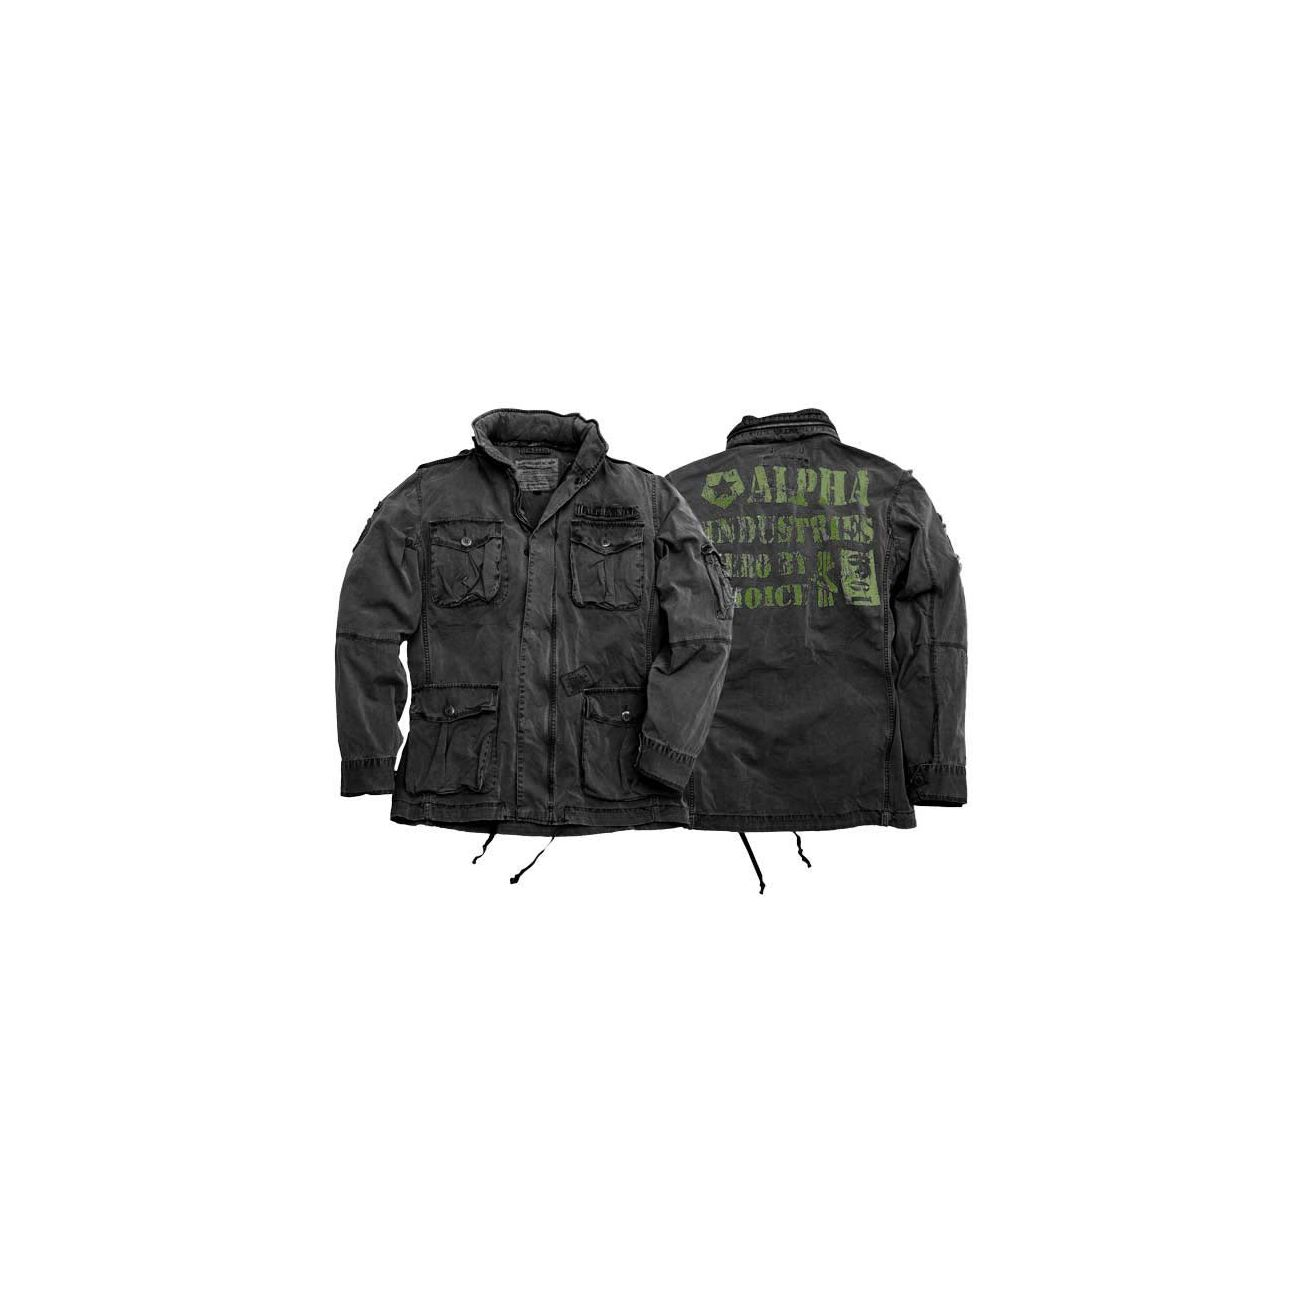 info for 70cdd a8ee1 Jacke Arlington Alpha Industries, schwarz